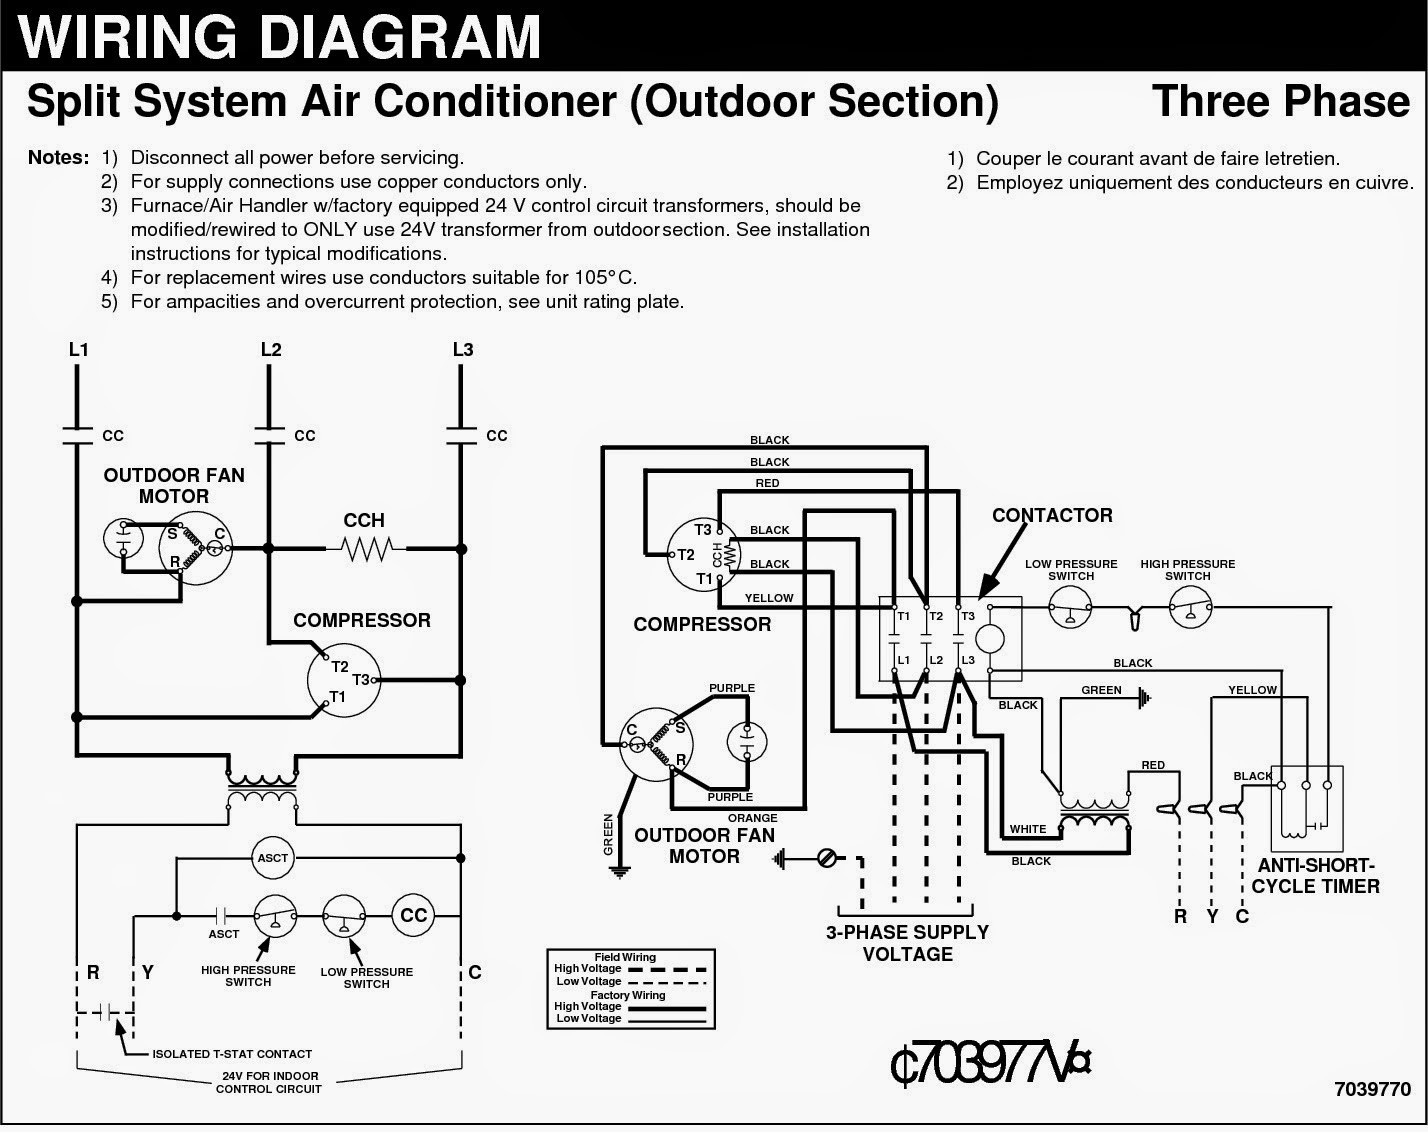 three phase converter wiring diagram index of postpic 2015 07 bathroom sink drain parts 3 for heater element best library electric schematic data heating